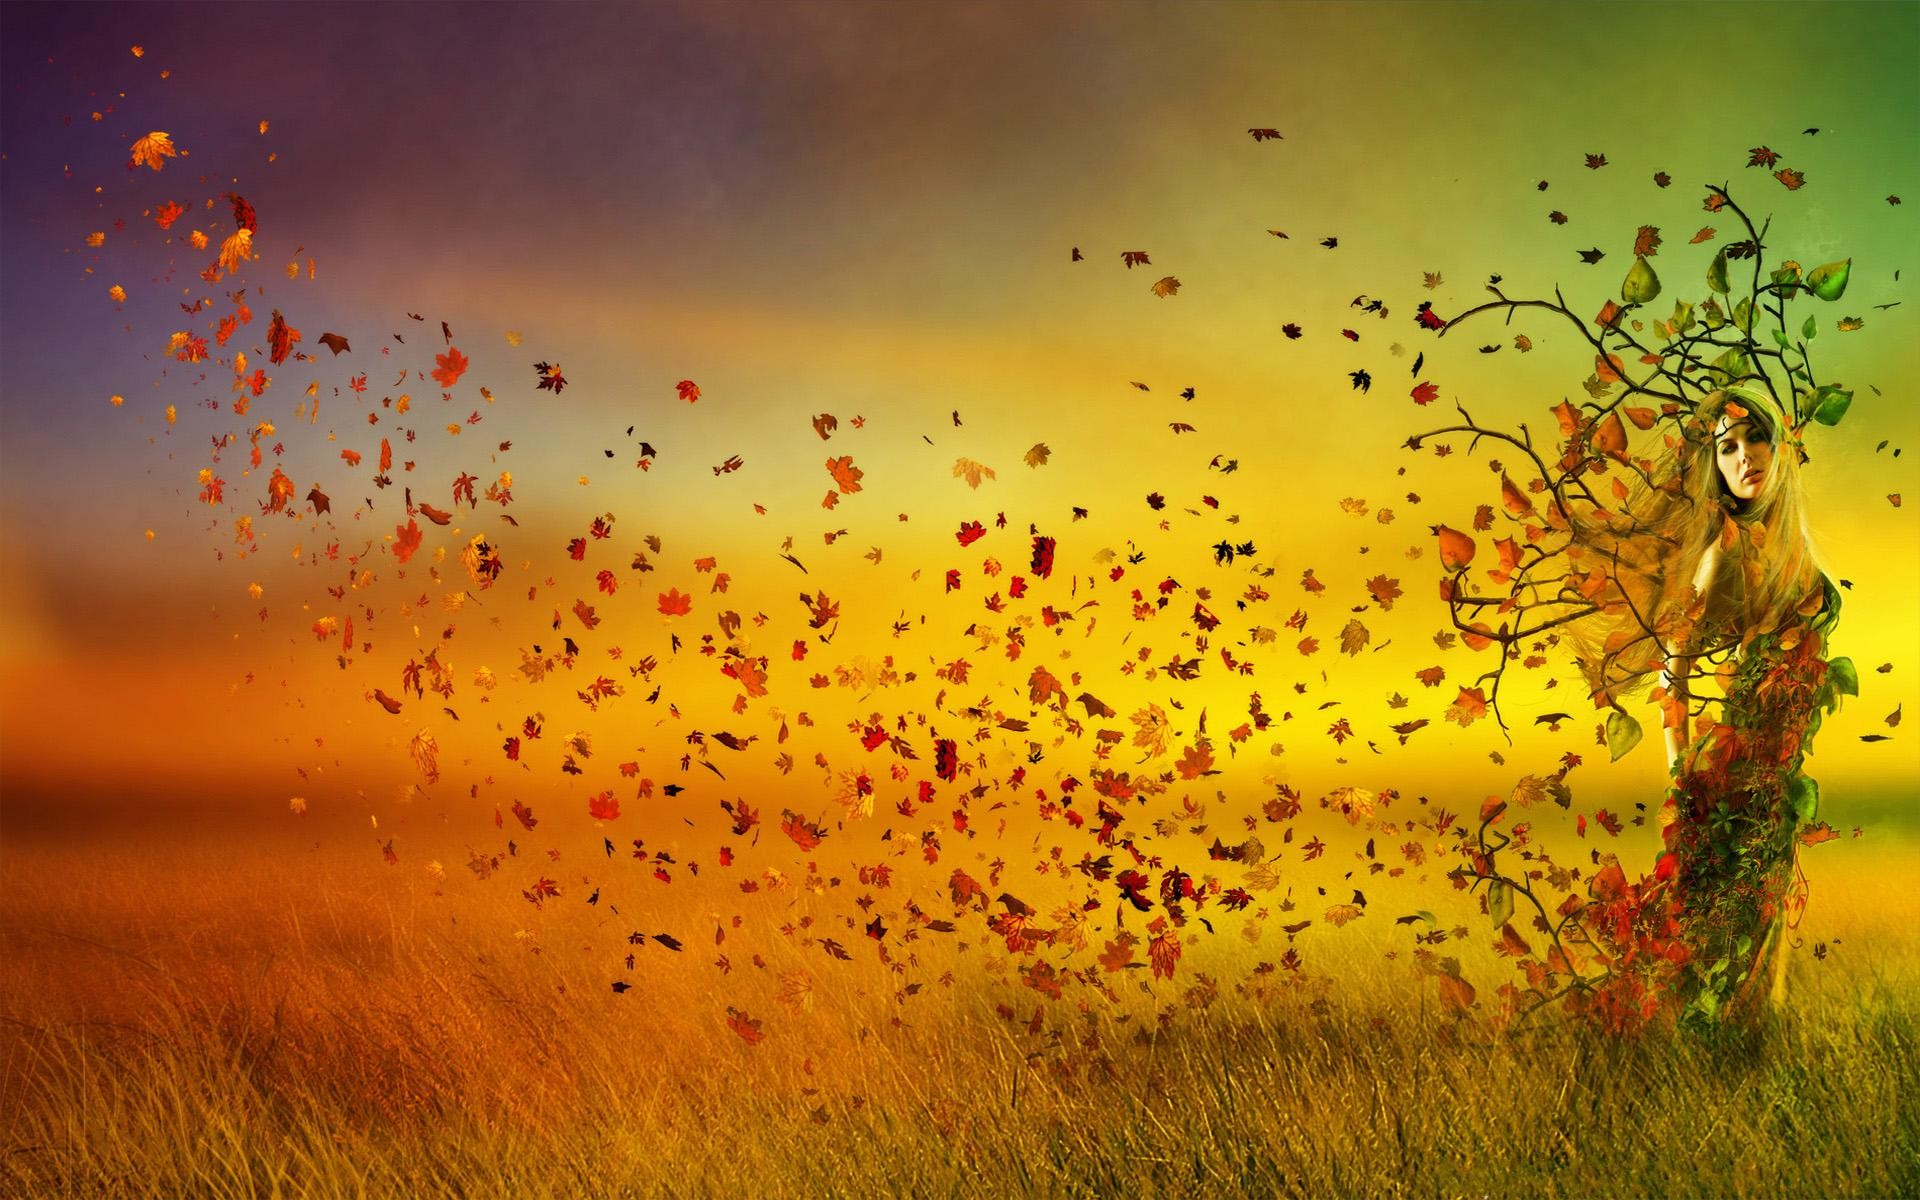 Fall Android Wallpaper 20 Autumn Wallpapers For Your Android